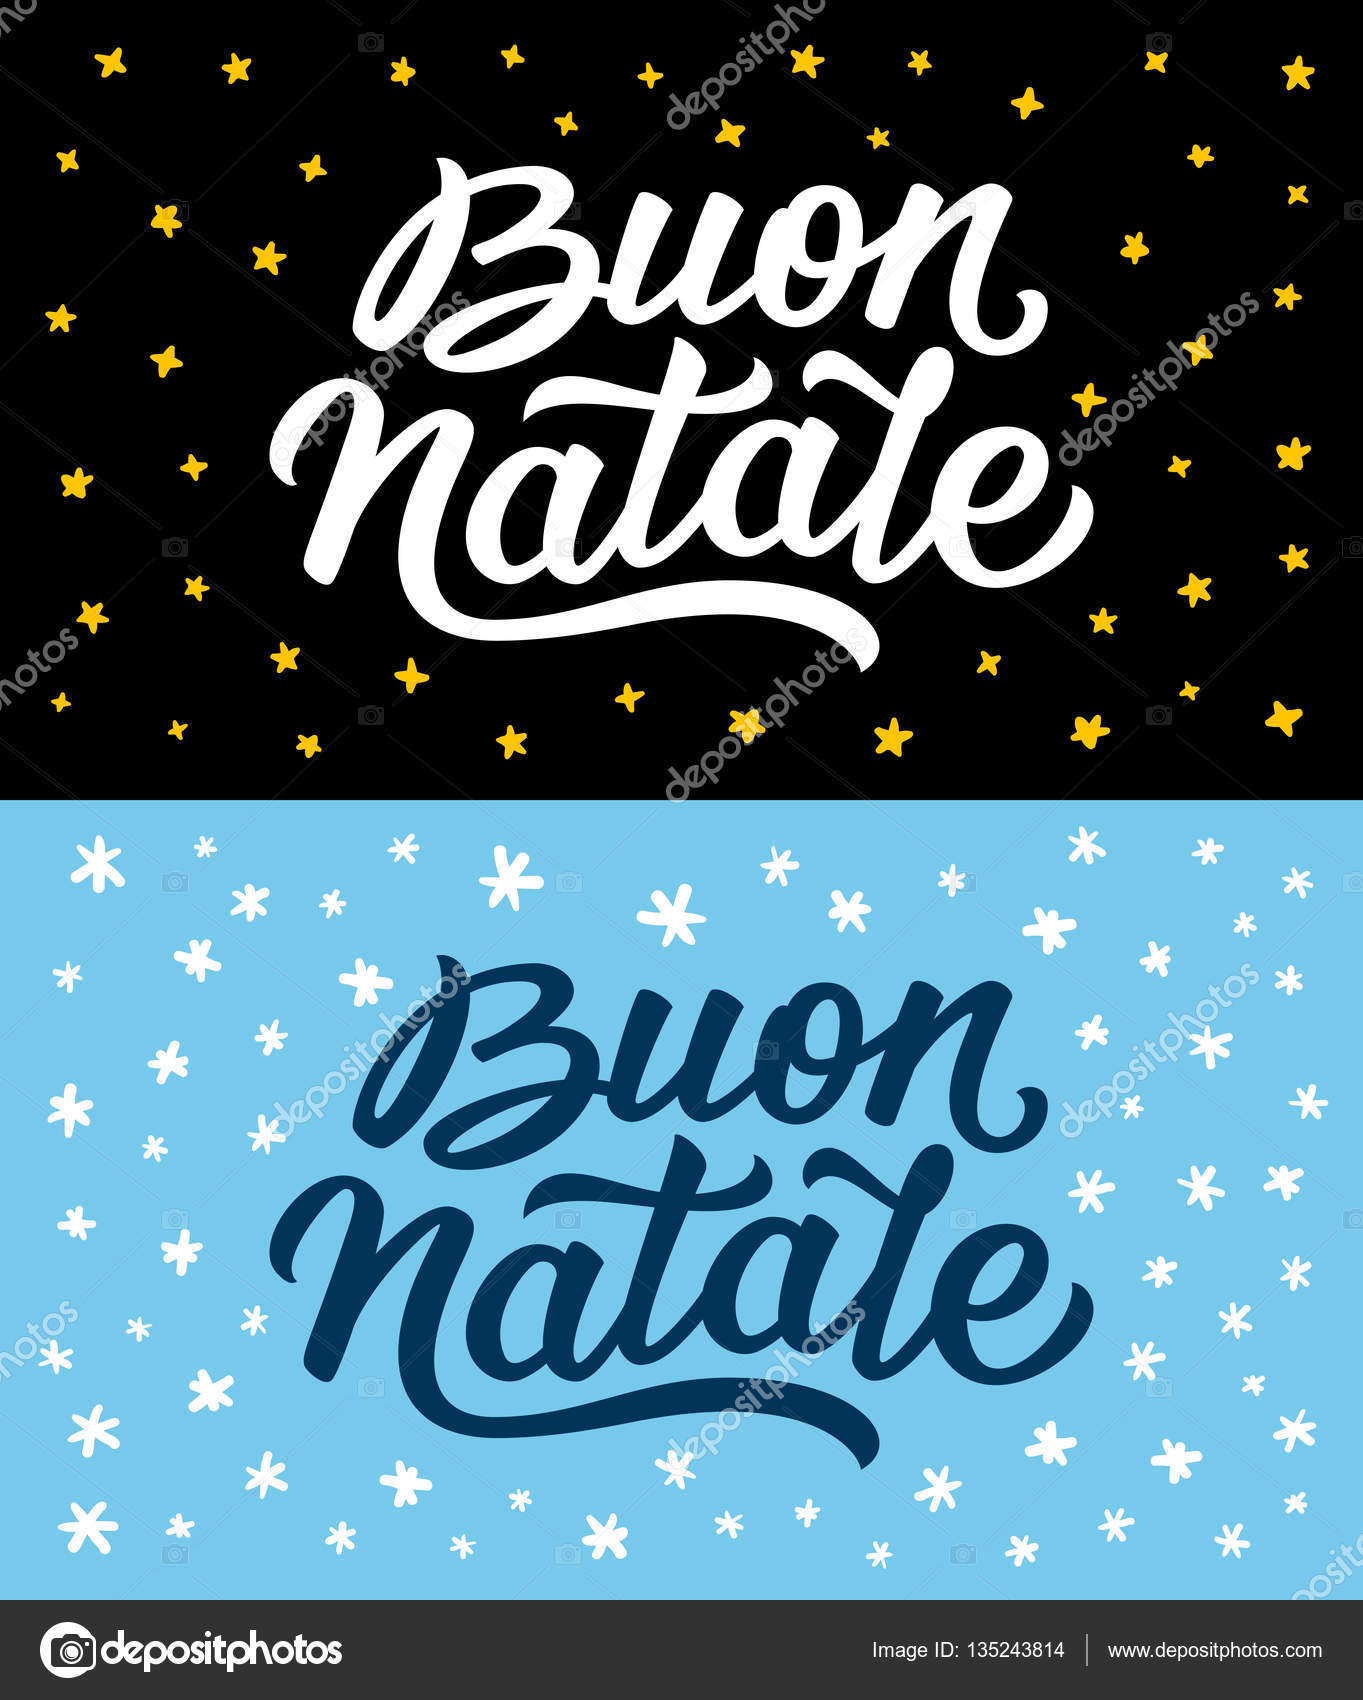 Merry christmas retro flat style greeting cards stock vector merry christmas vintage flat greeting cards or flyers set with hand lettering xmas greetings text on italian language vector by astartu m4hsunfo